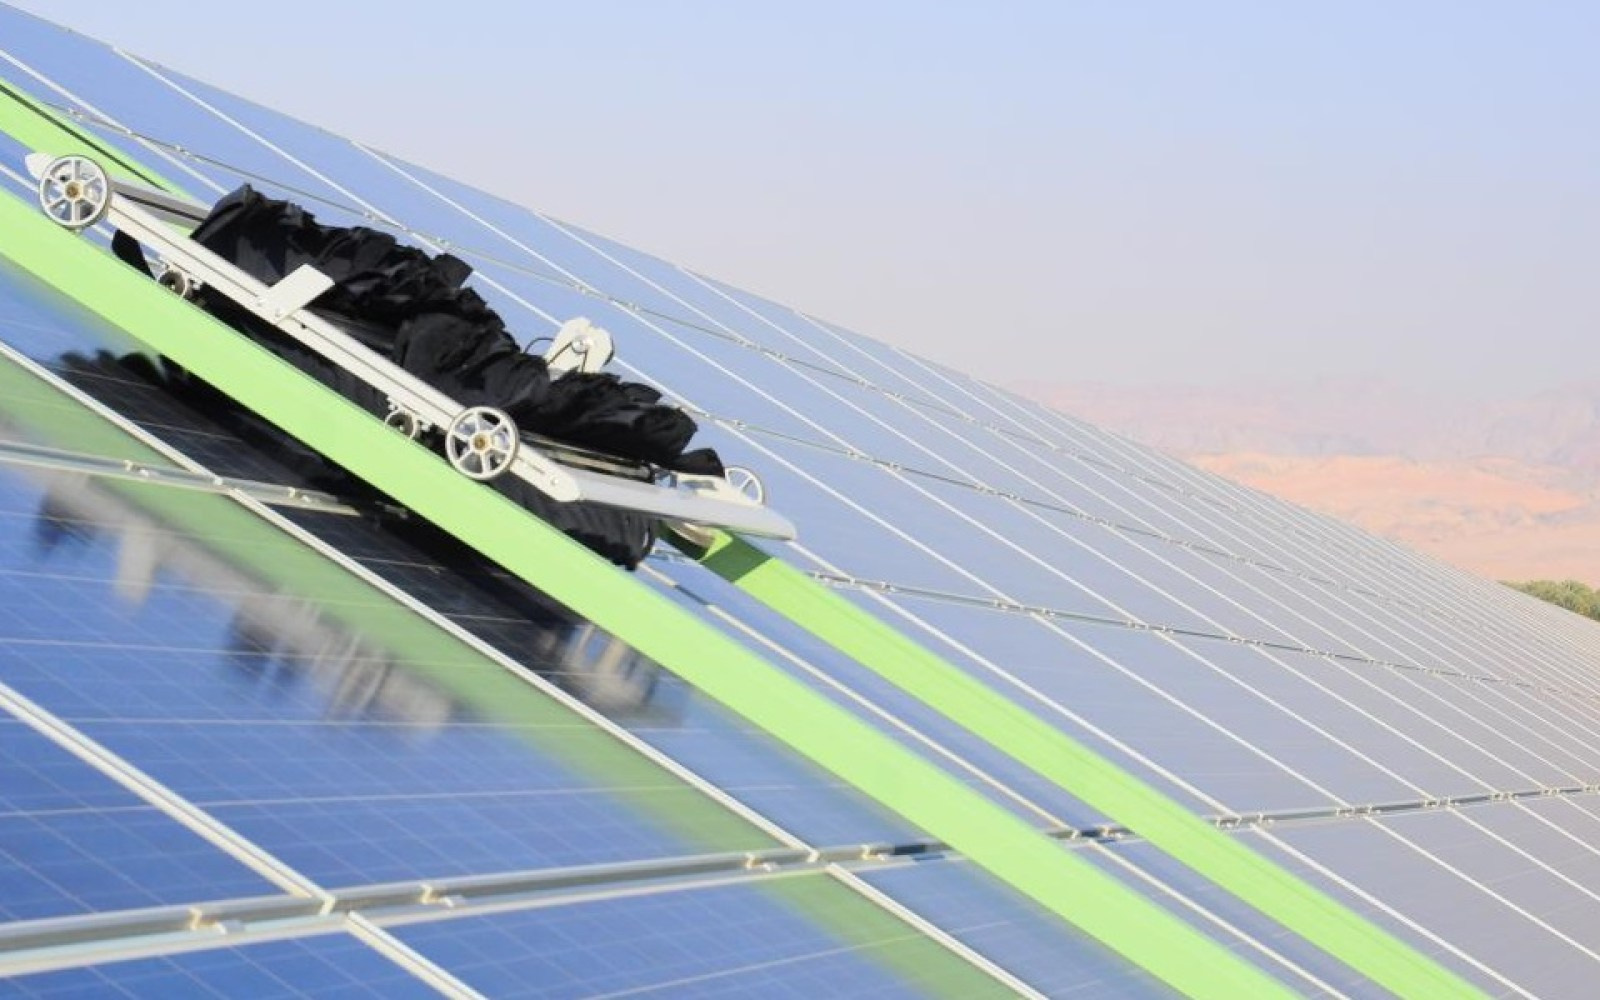 Electrek green energy brief: 650MW solar plant construction video, world's largest solar facade, and more